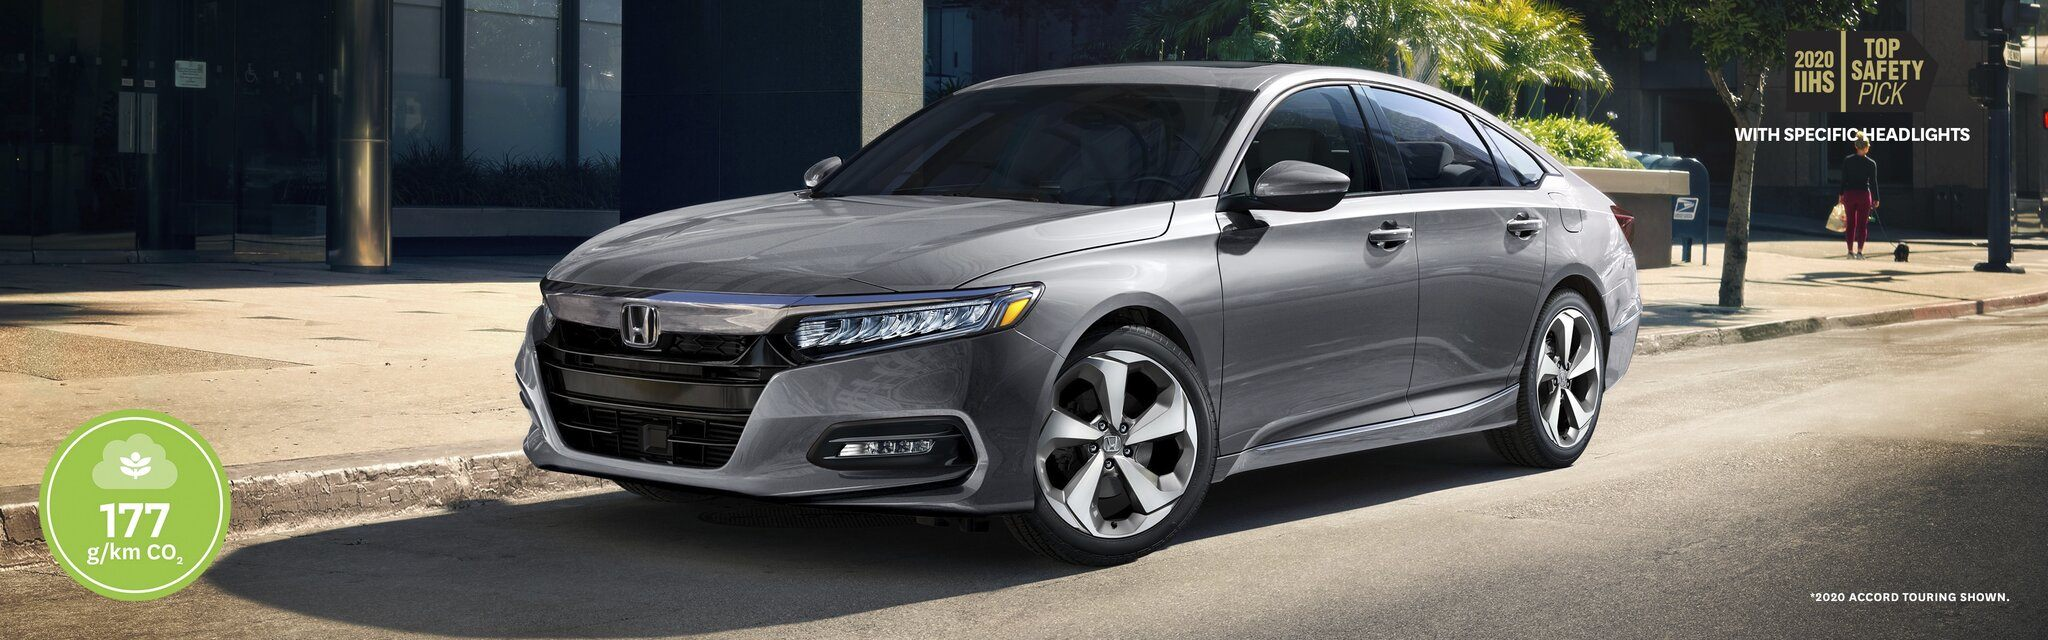 Front side view of 2020 Honda Accord parked